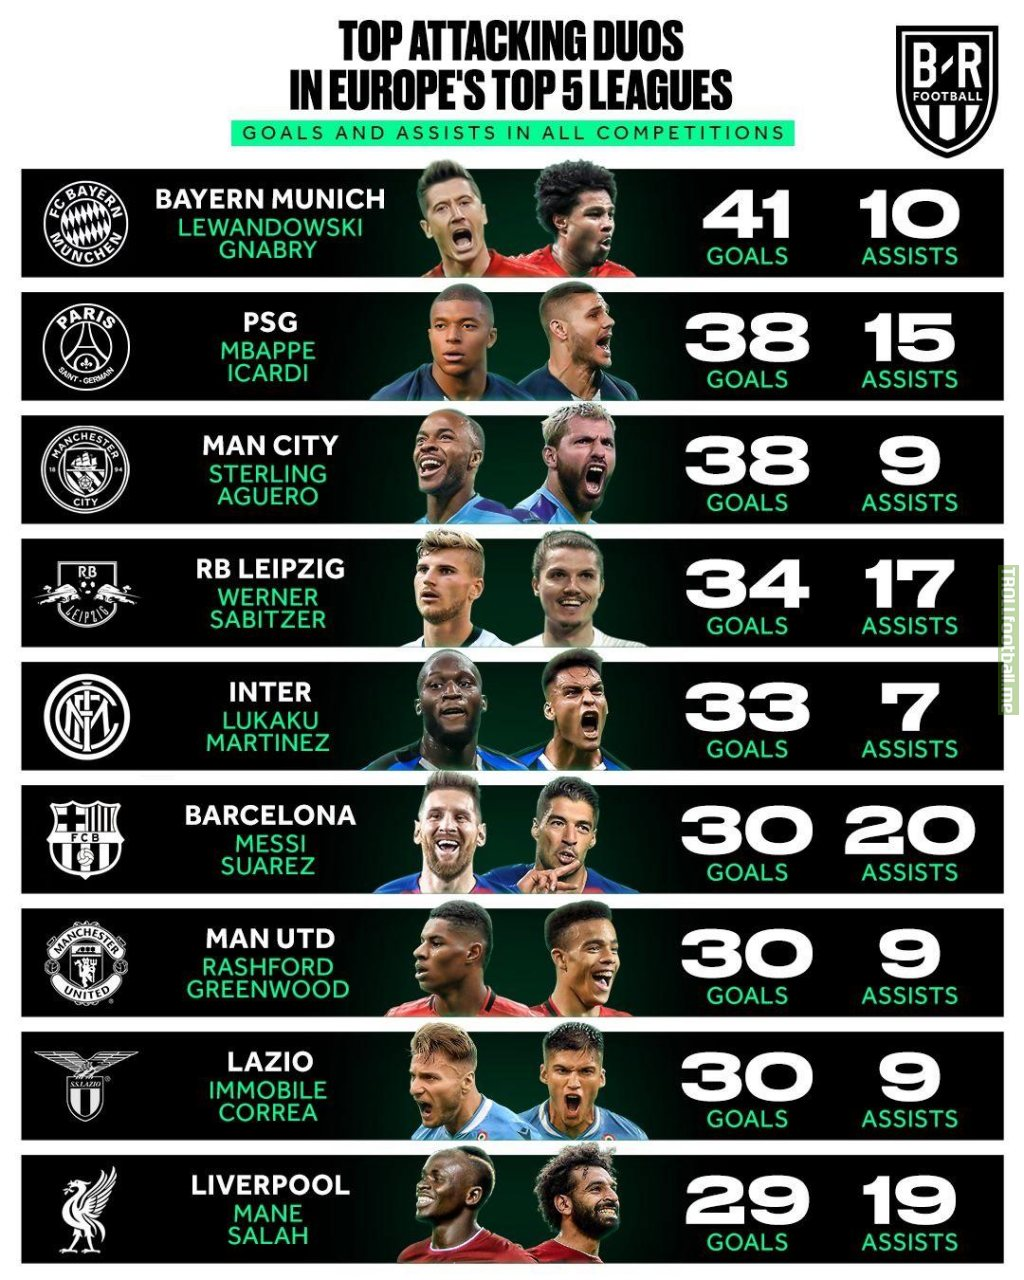 Top Attacking Duos in Europe's Top 5 Leagues